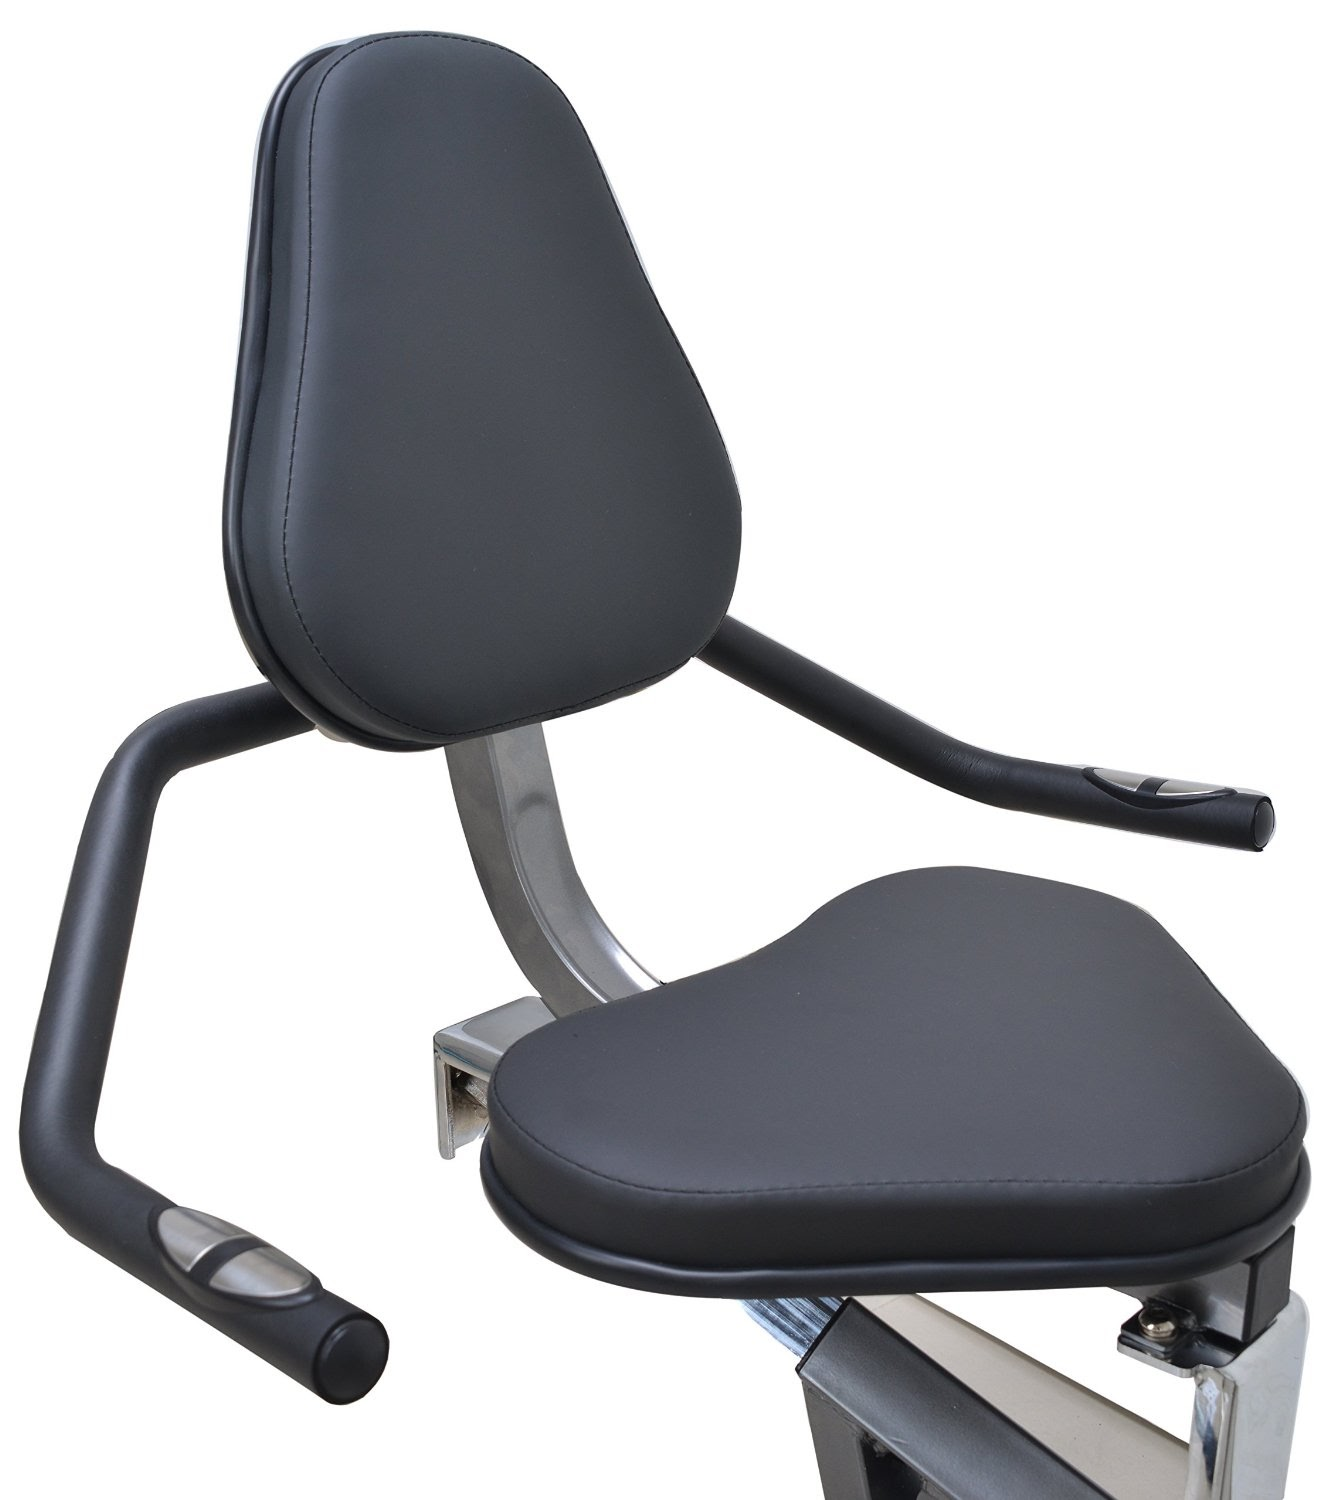 Adjustable Padded Seat With Backrest Support U0026 Pulse Grip Heart Rate  Sensors In Handlebars